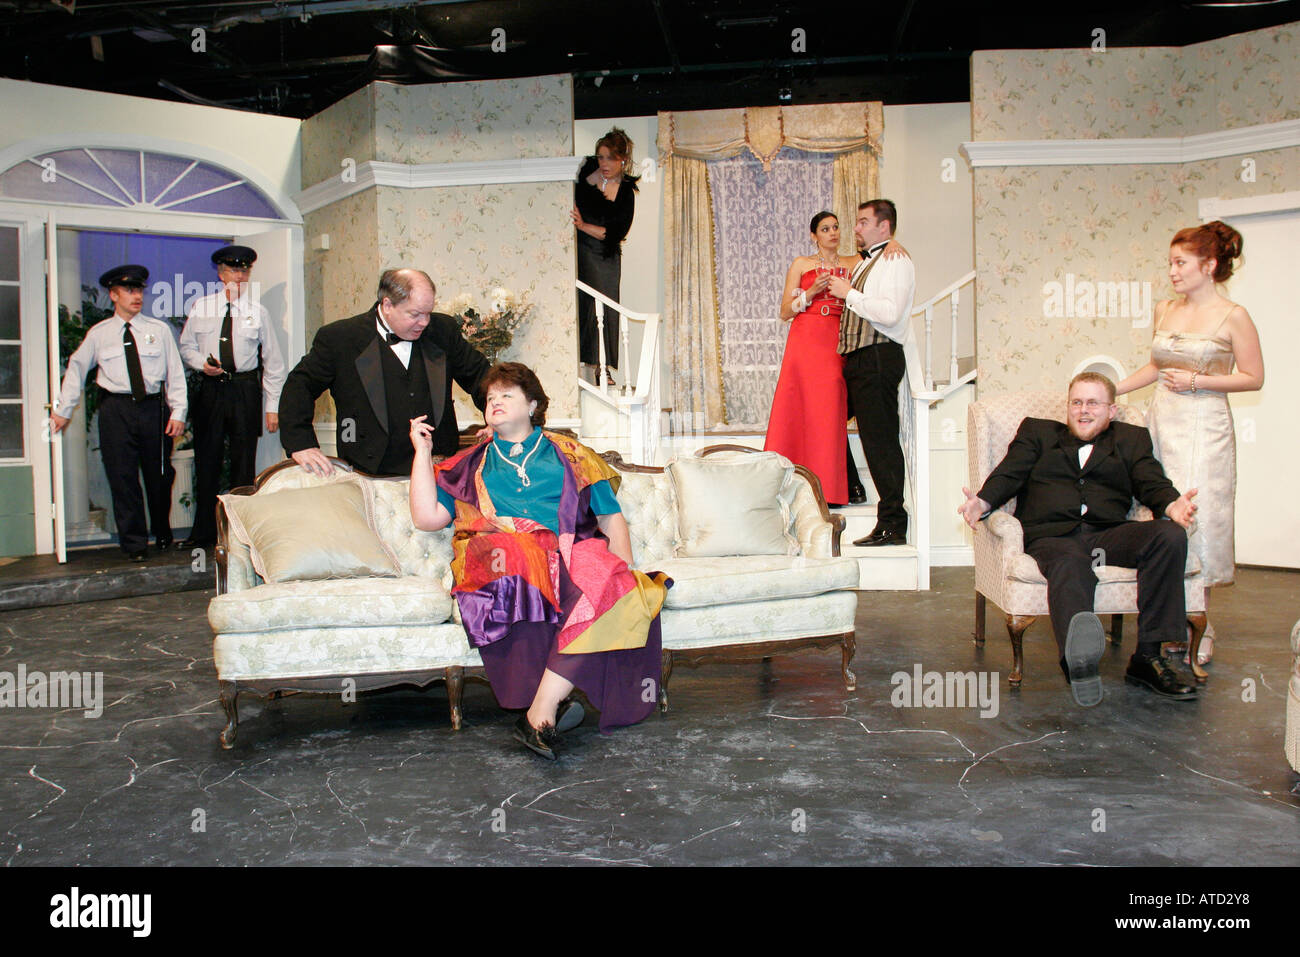 theater indiana Adult